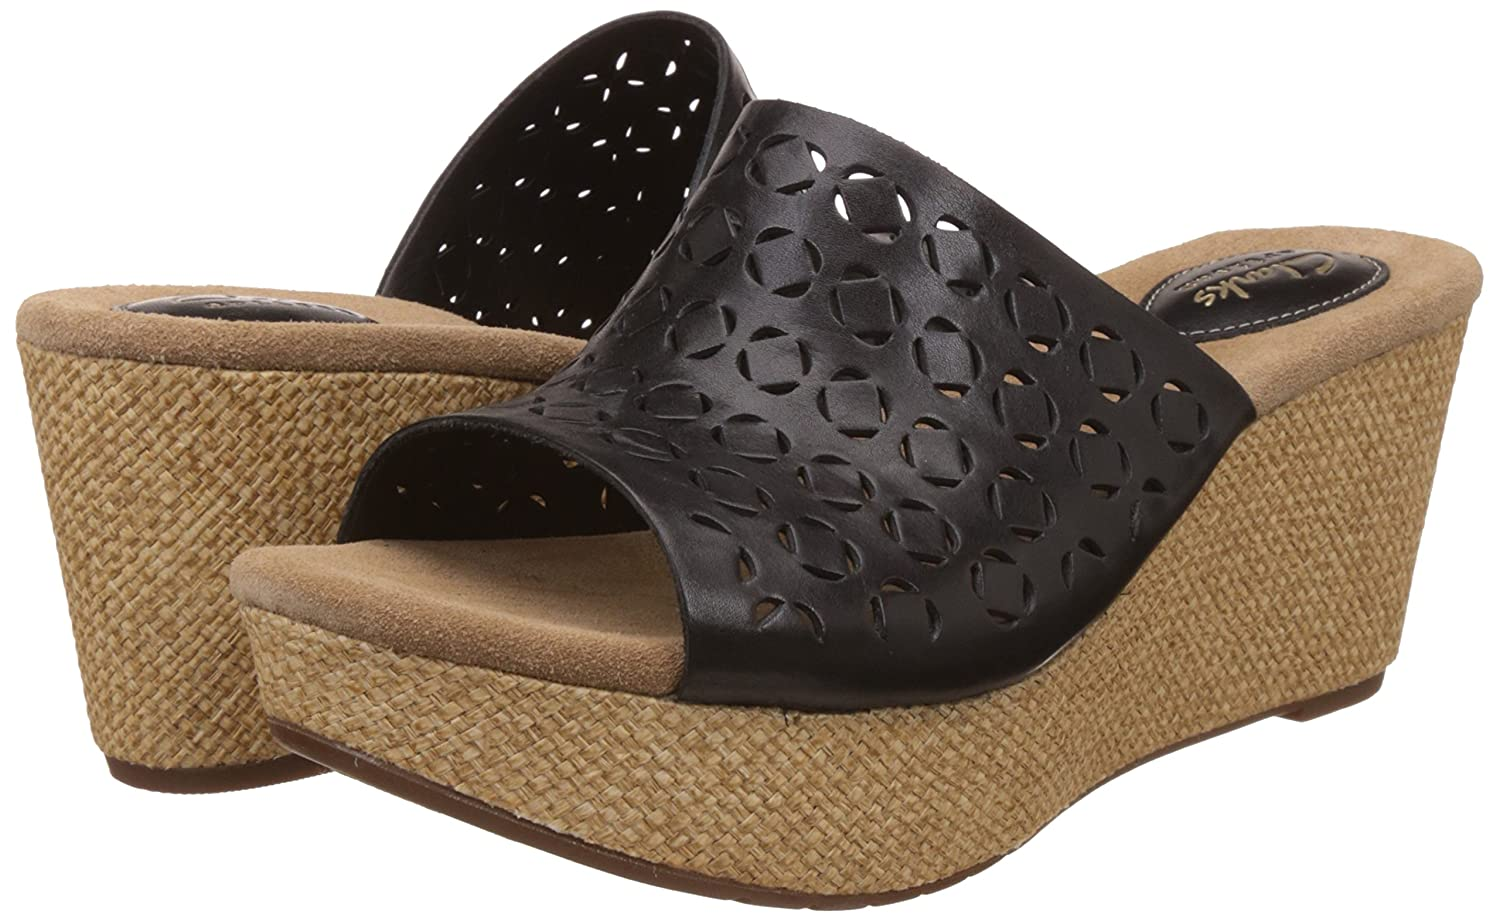 78efa40b9bf6 Clarks Women s Caslynn Dylan Black Leather Fashion Sandals - 8 UK India (42  EU)  Buy Online at Low Prices in India - Amazon.in